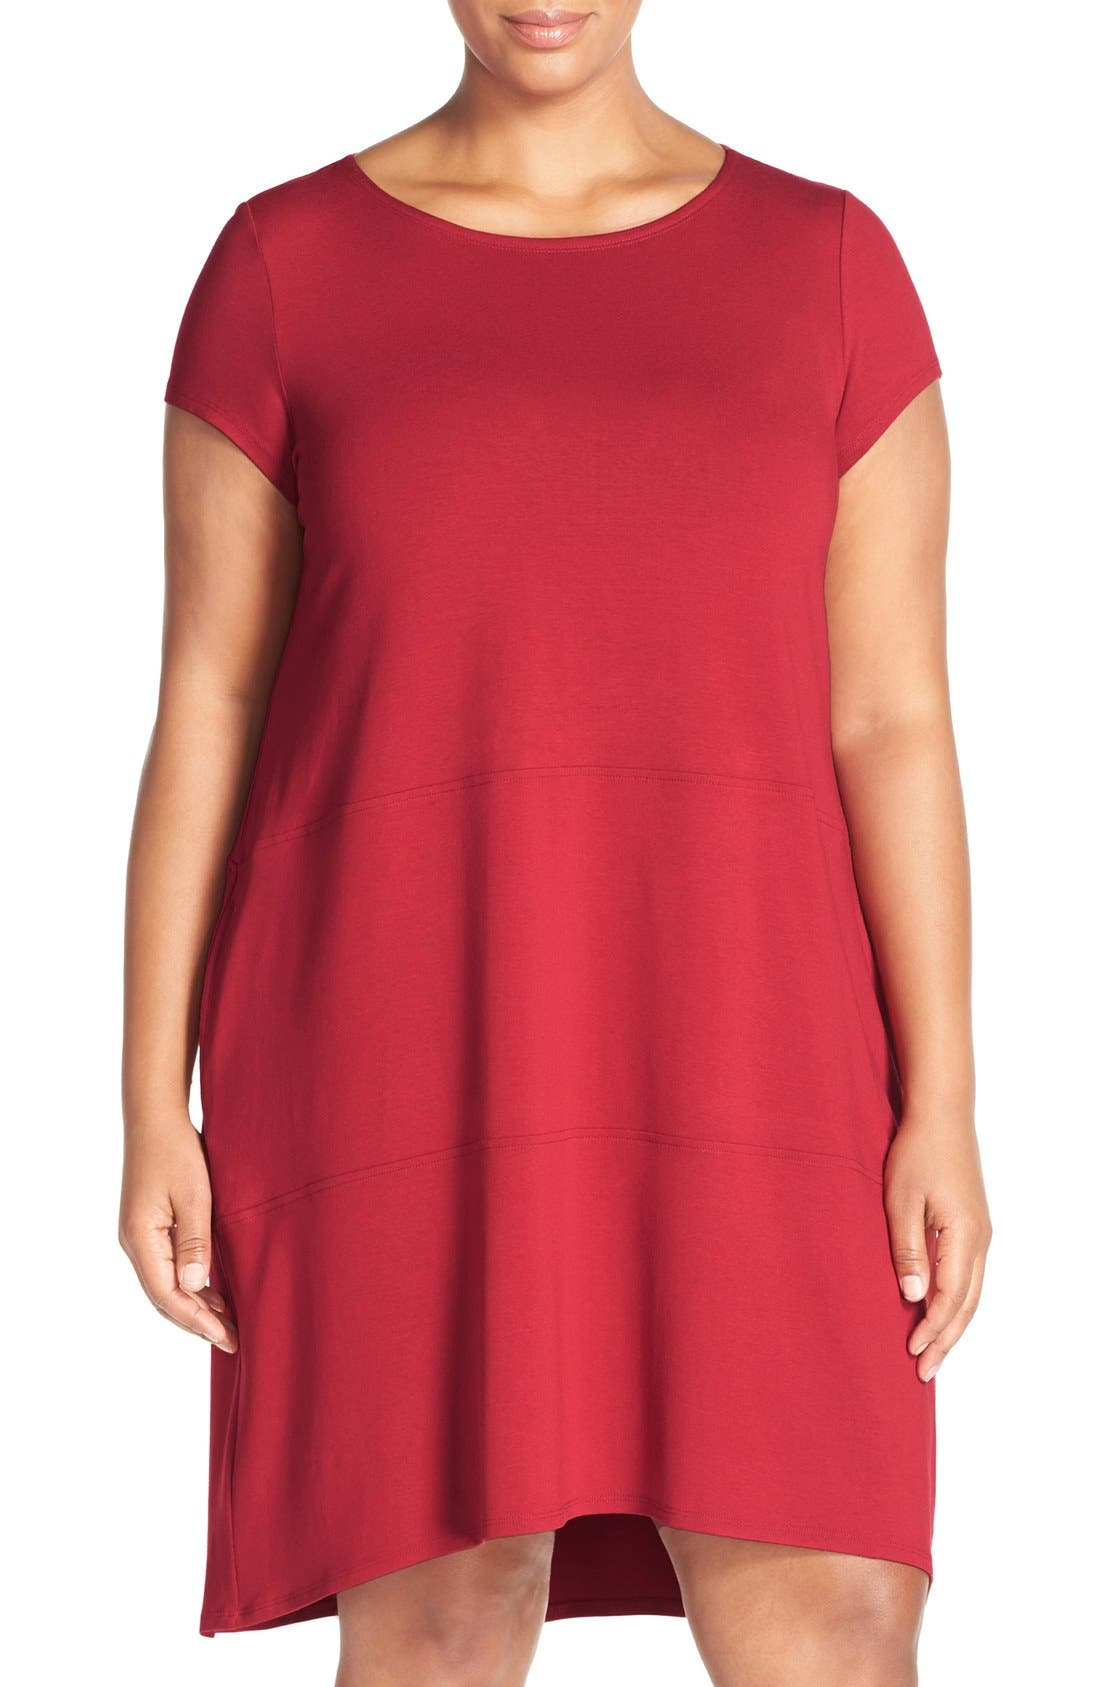 Alternate Image 1 Selected - Eileen Fisher Bateau Neck Cap Sleeve Dress (Plus Size)